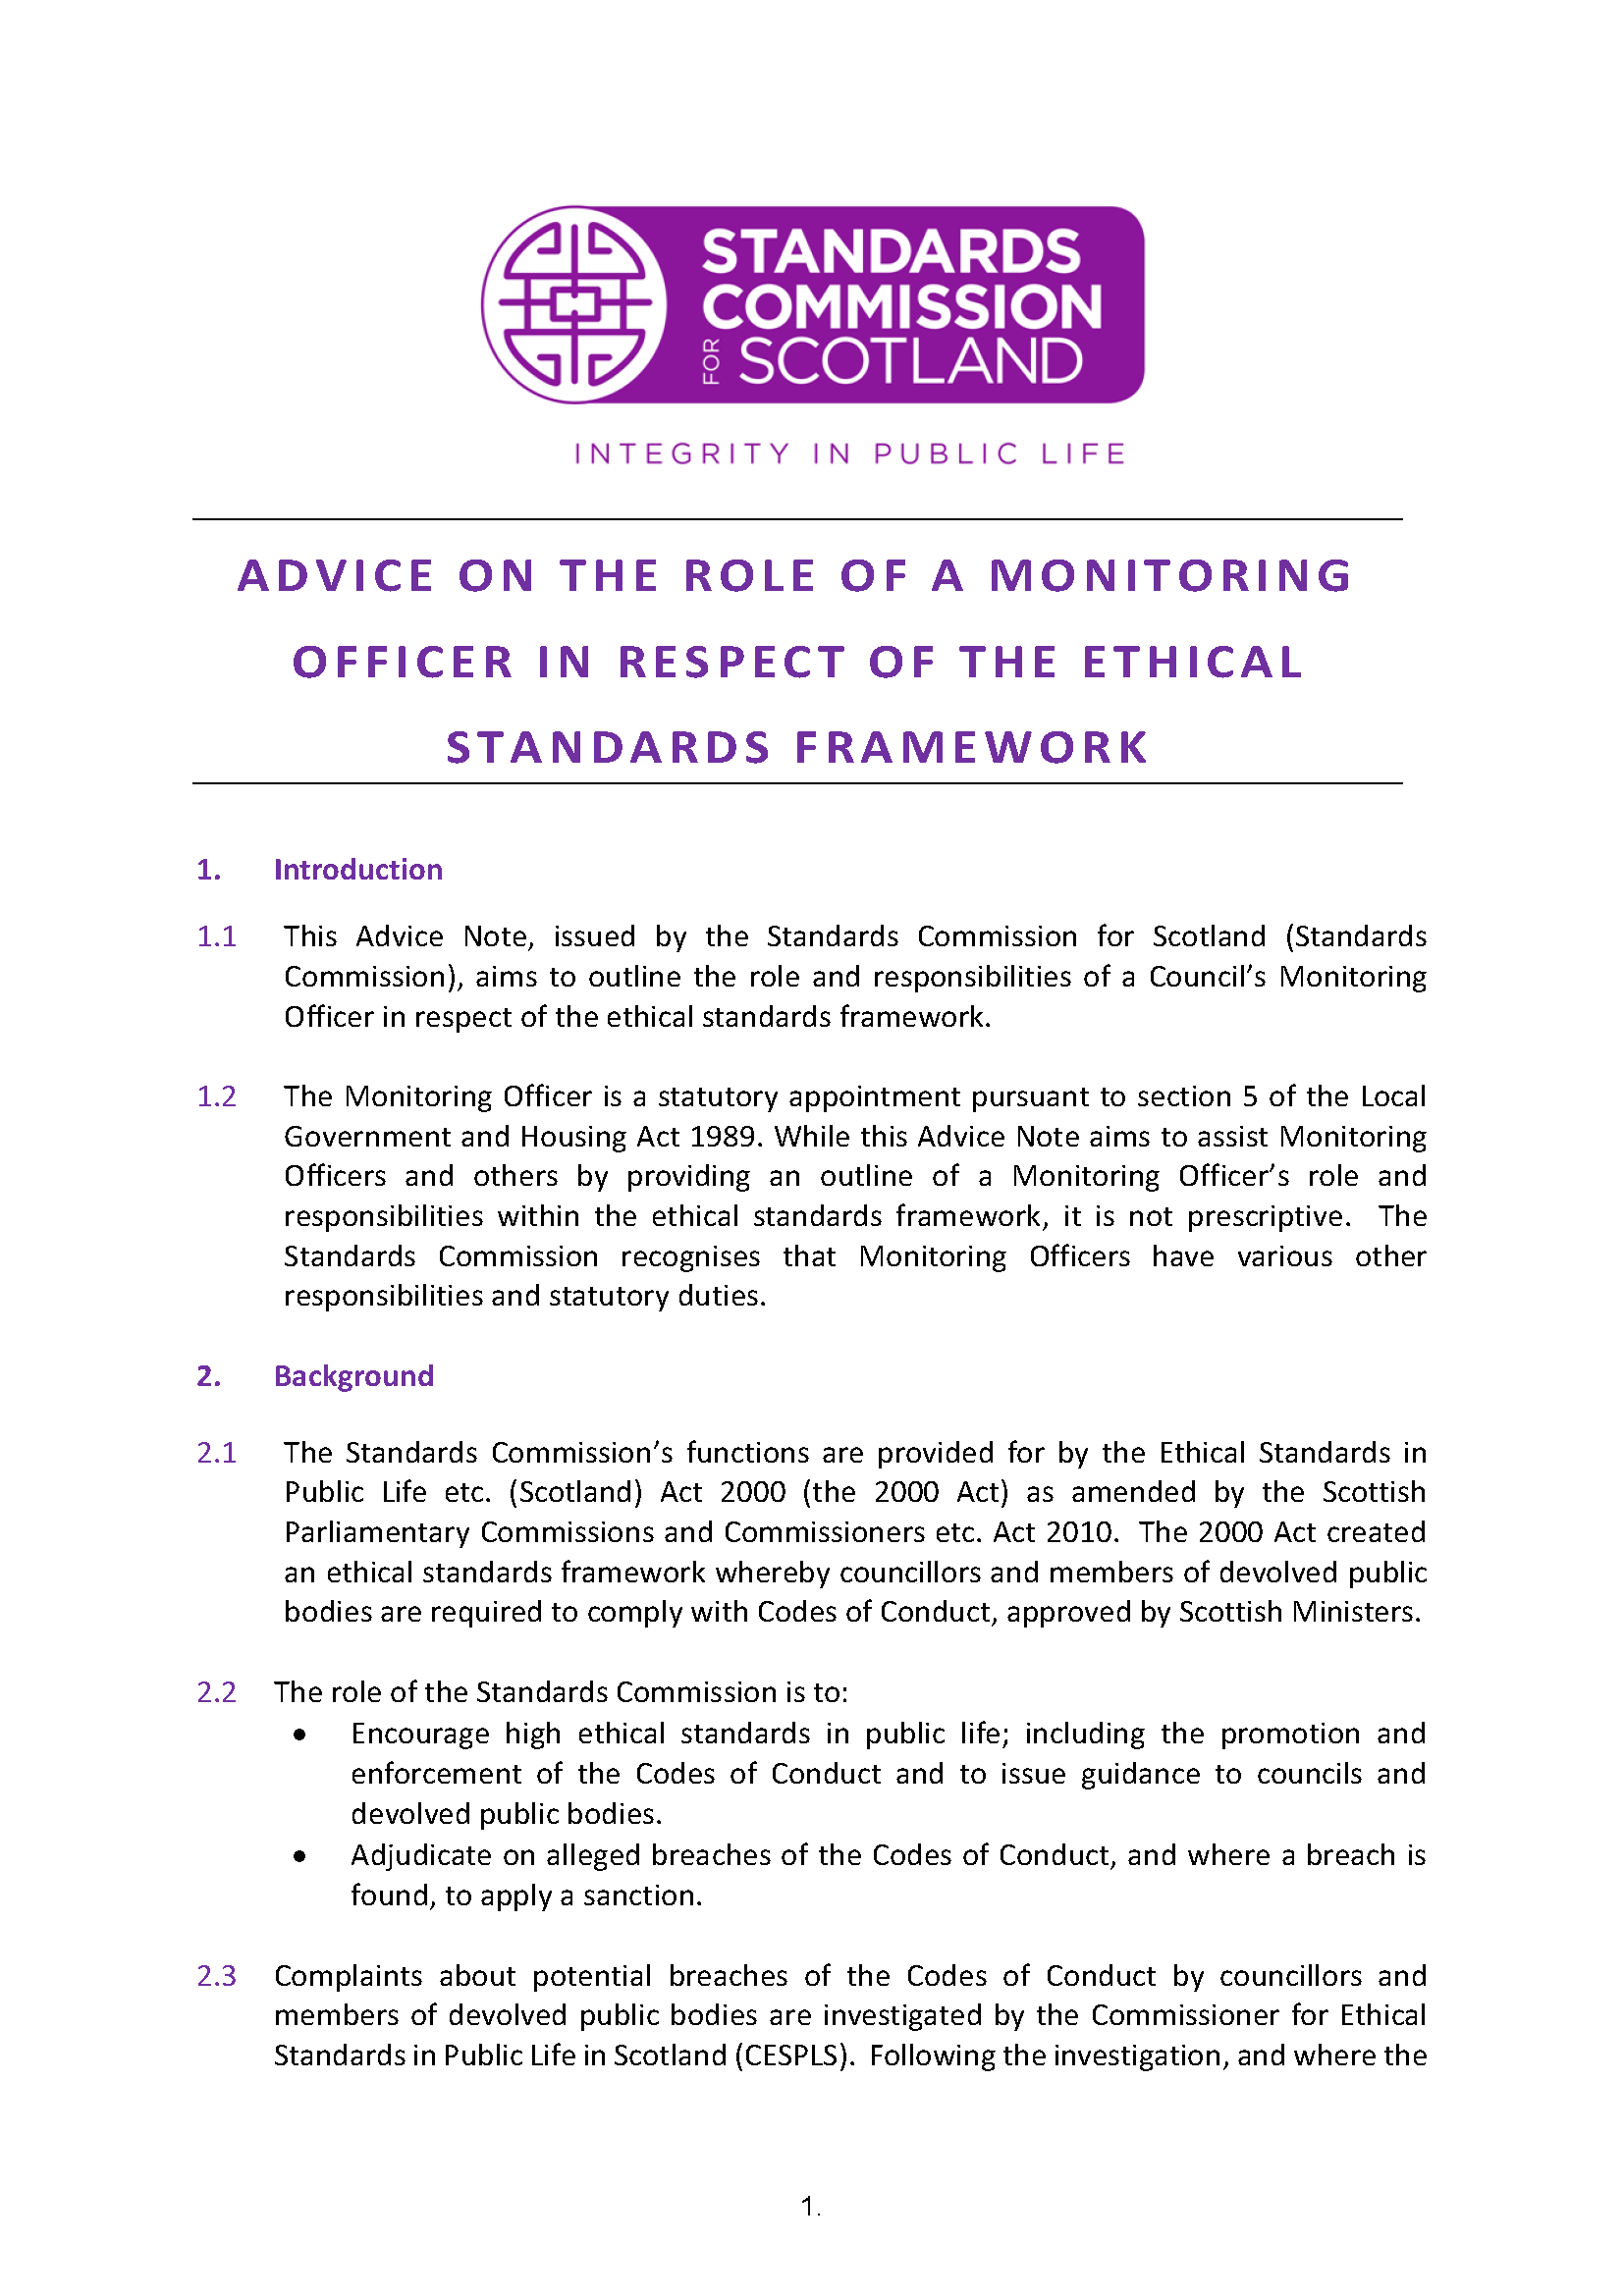 Advice Note on the role of a Monitoring Officer